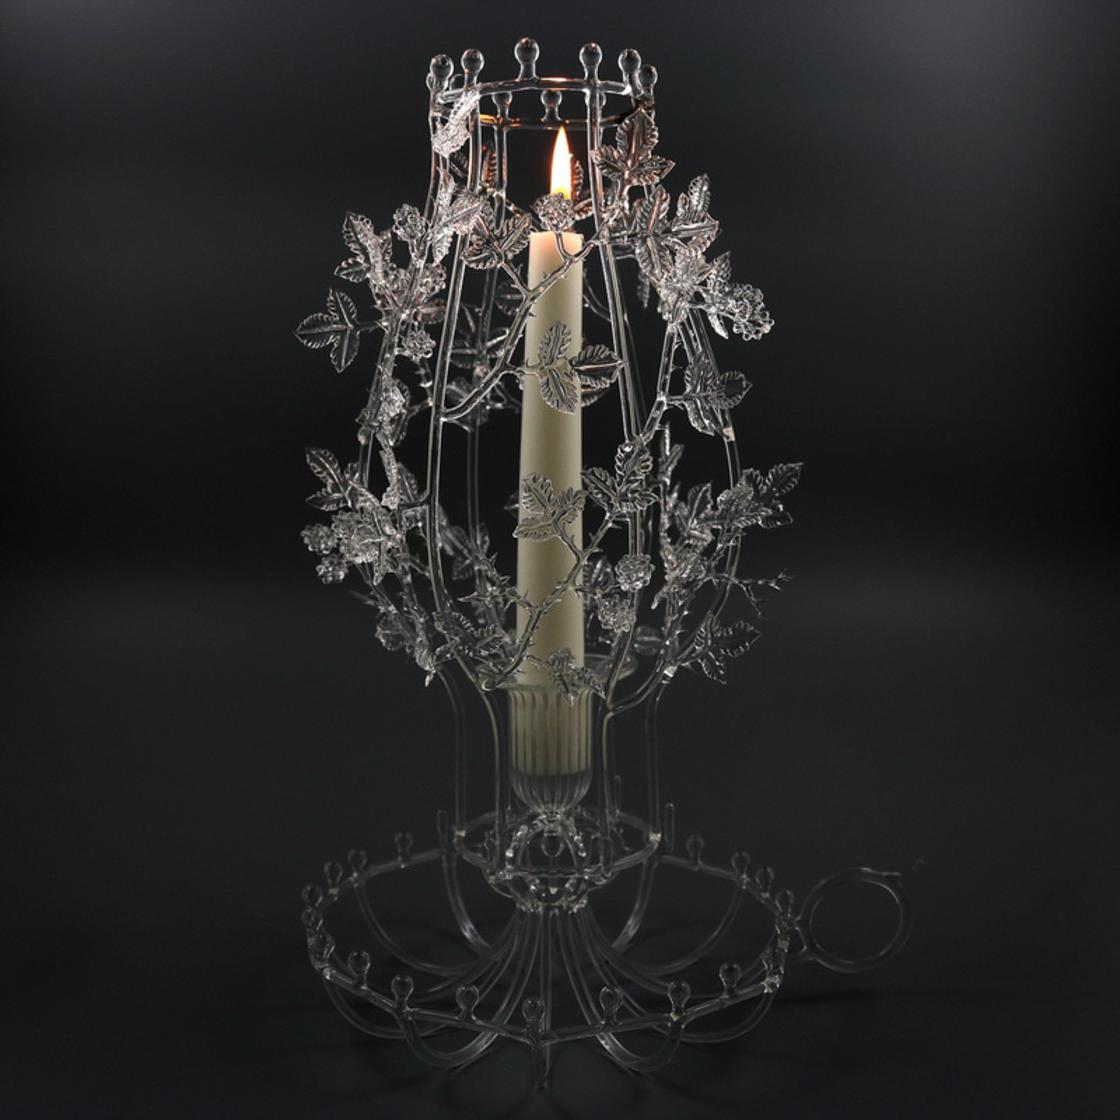 Fragile and delicate, the impressive glass creations of Kit Paulson